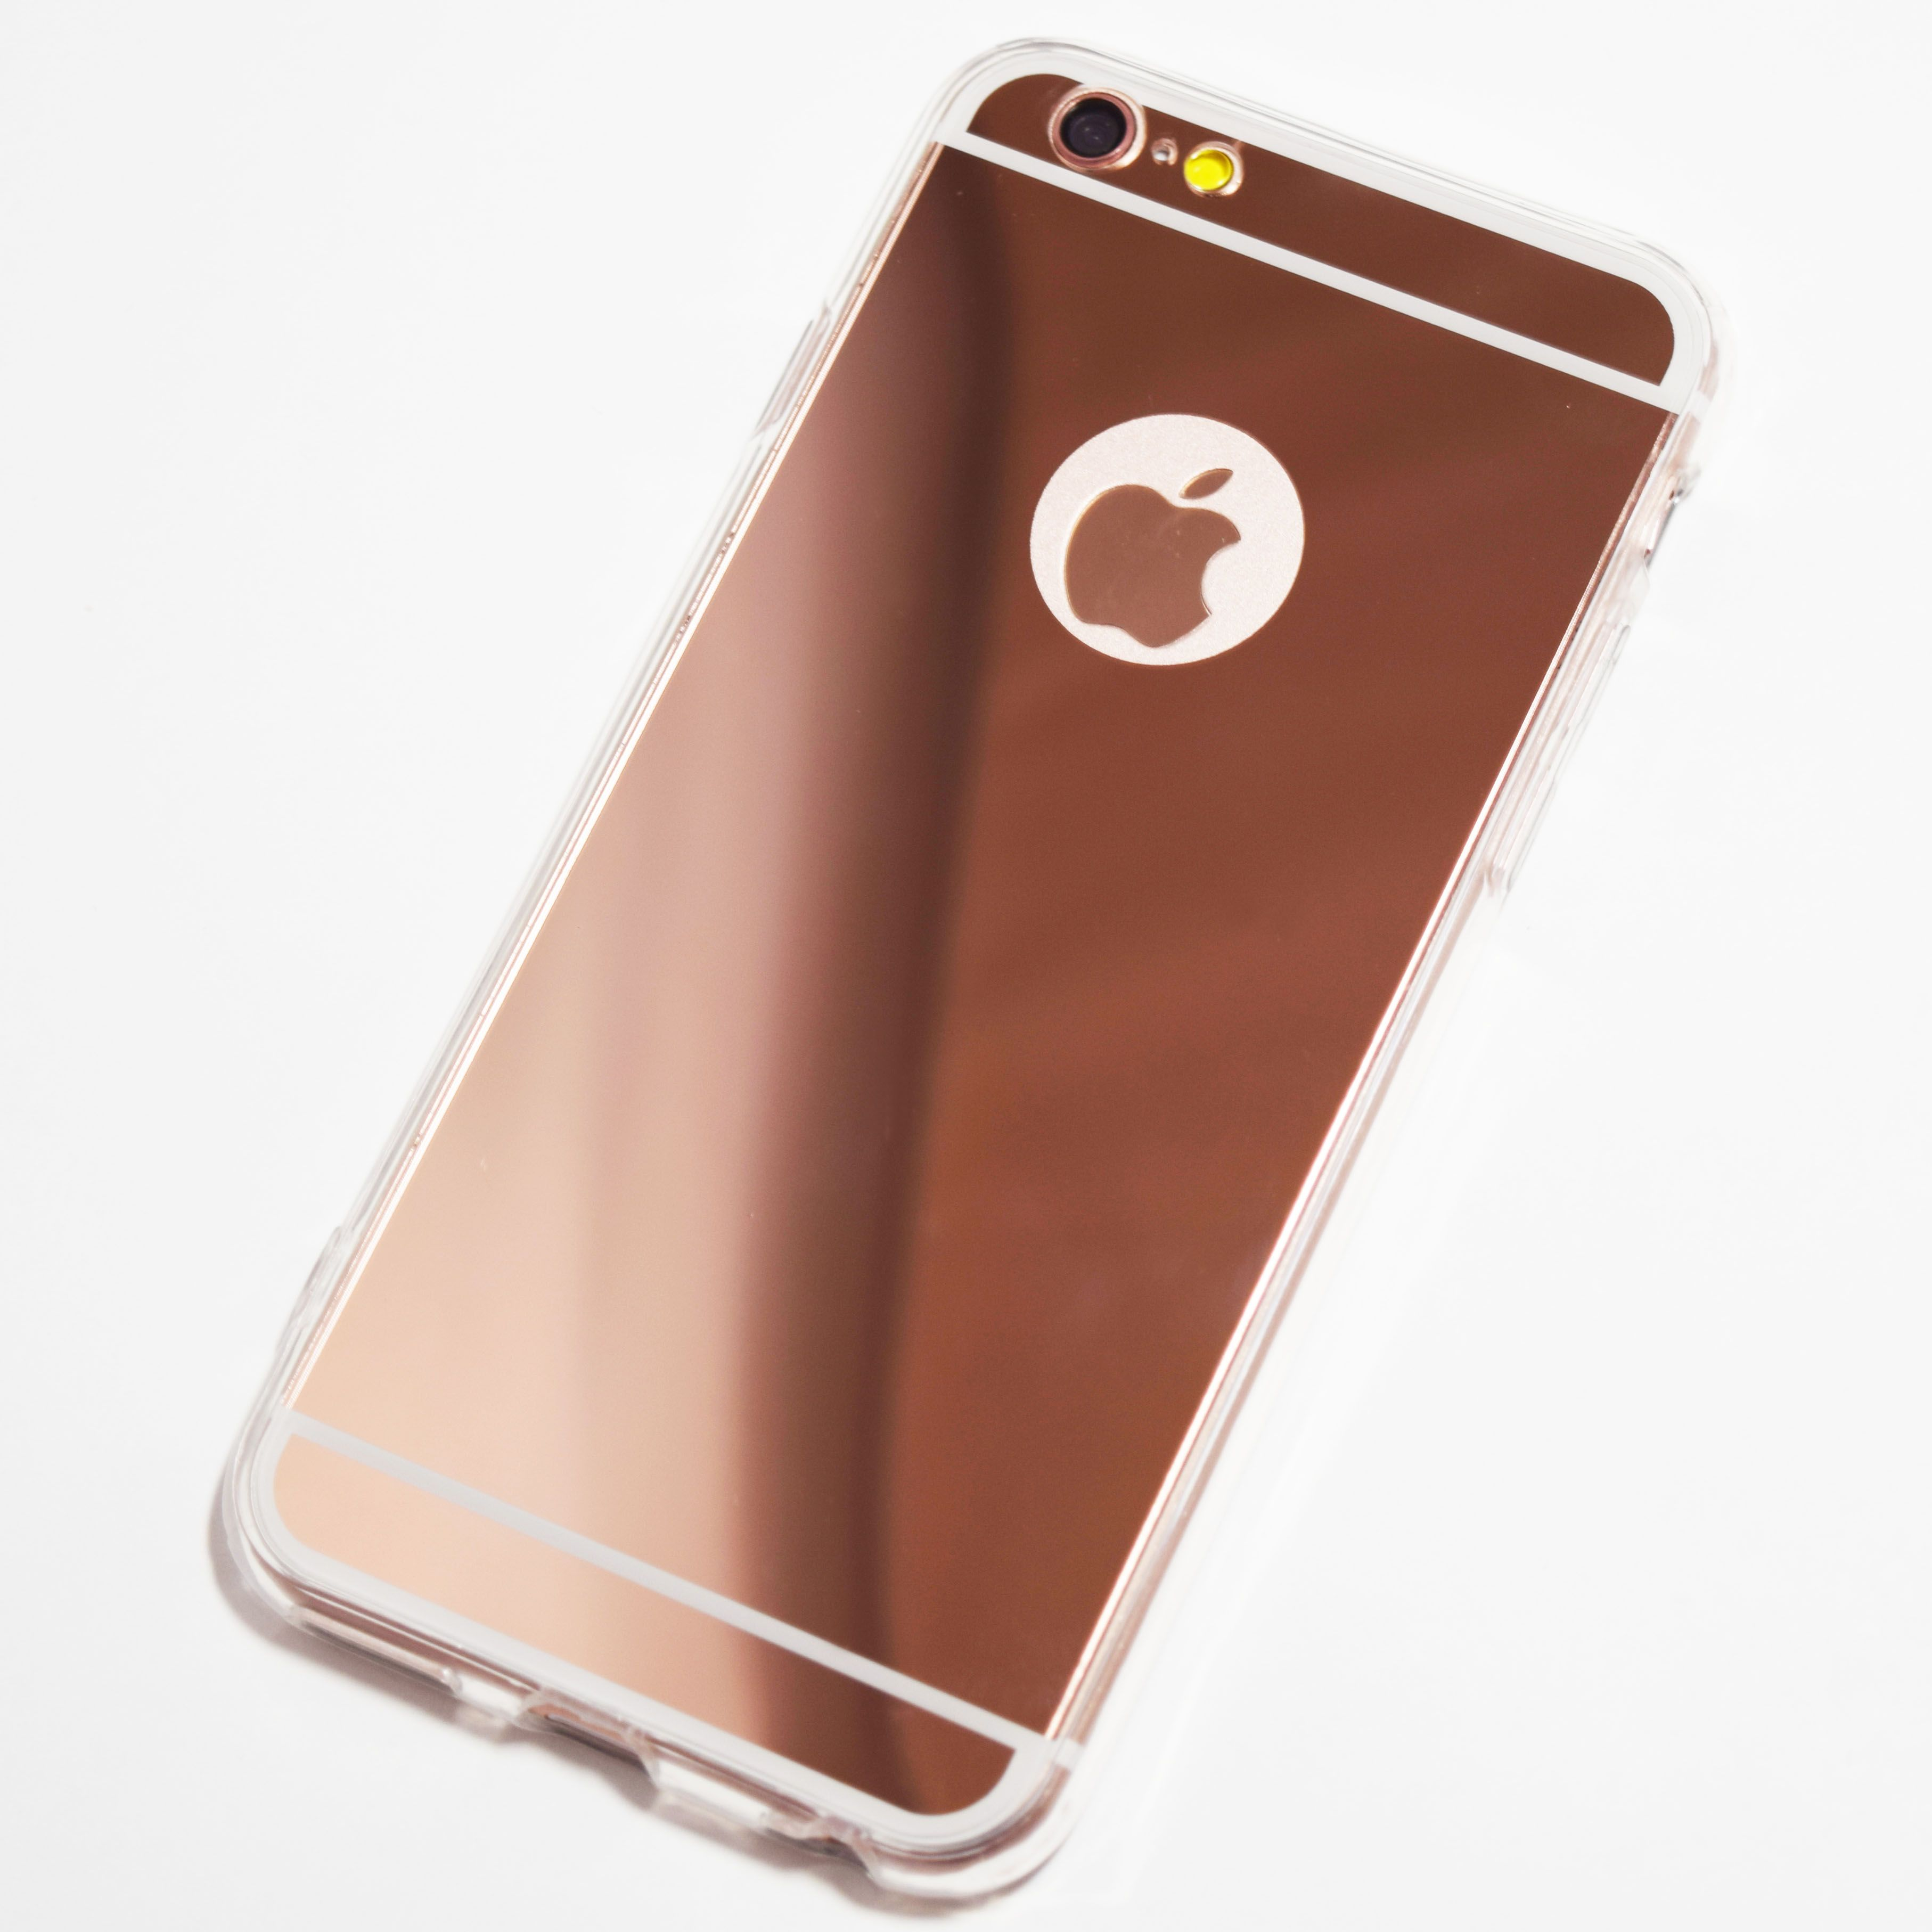 Rose Gold Iphone 6 6s Reflective Mirror Case Retailite Rose Gold Iphone Iphone Mirror Case Iphone